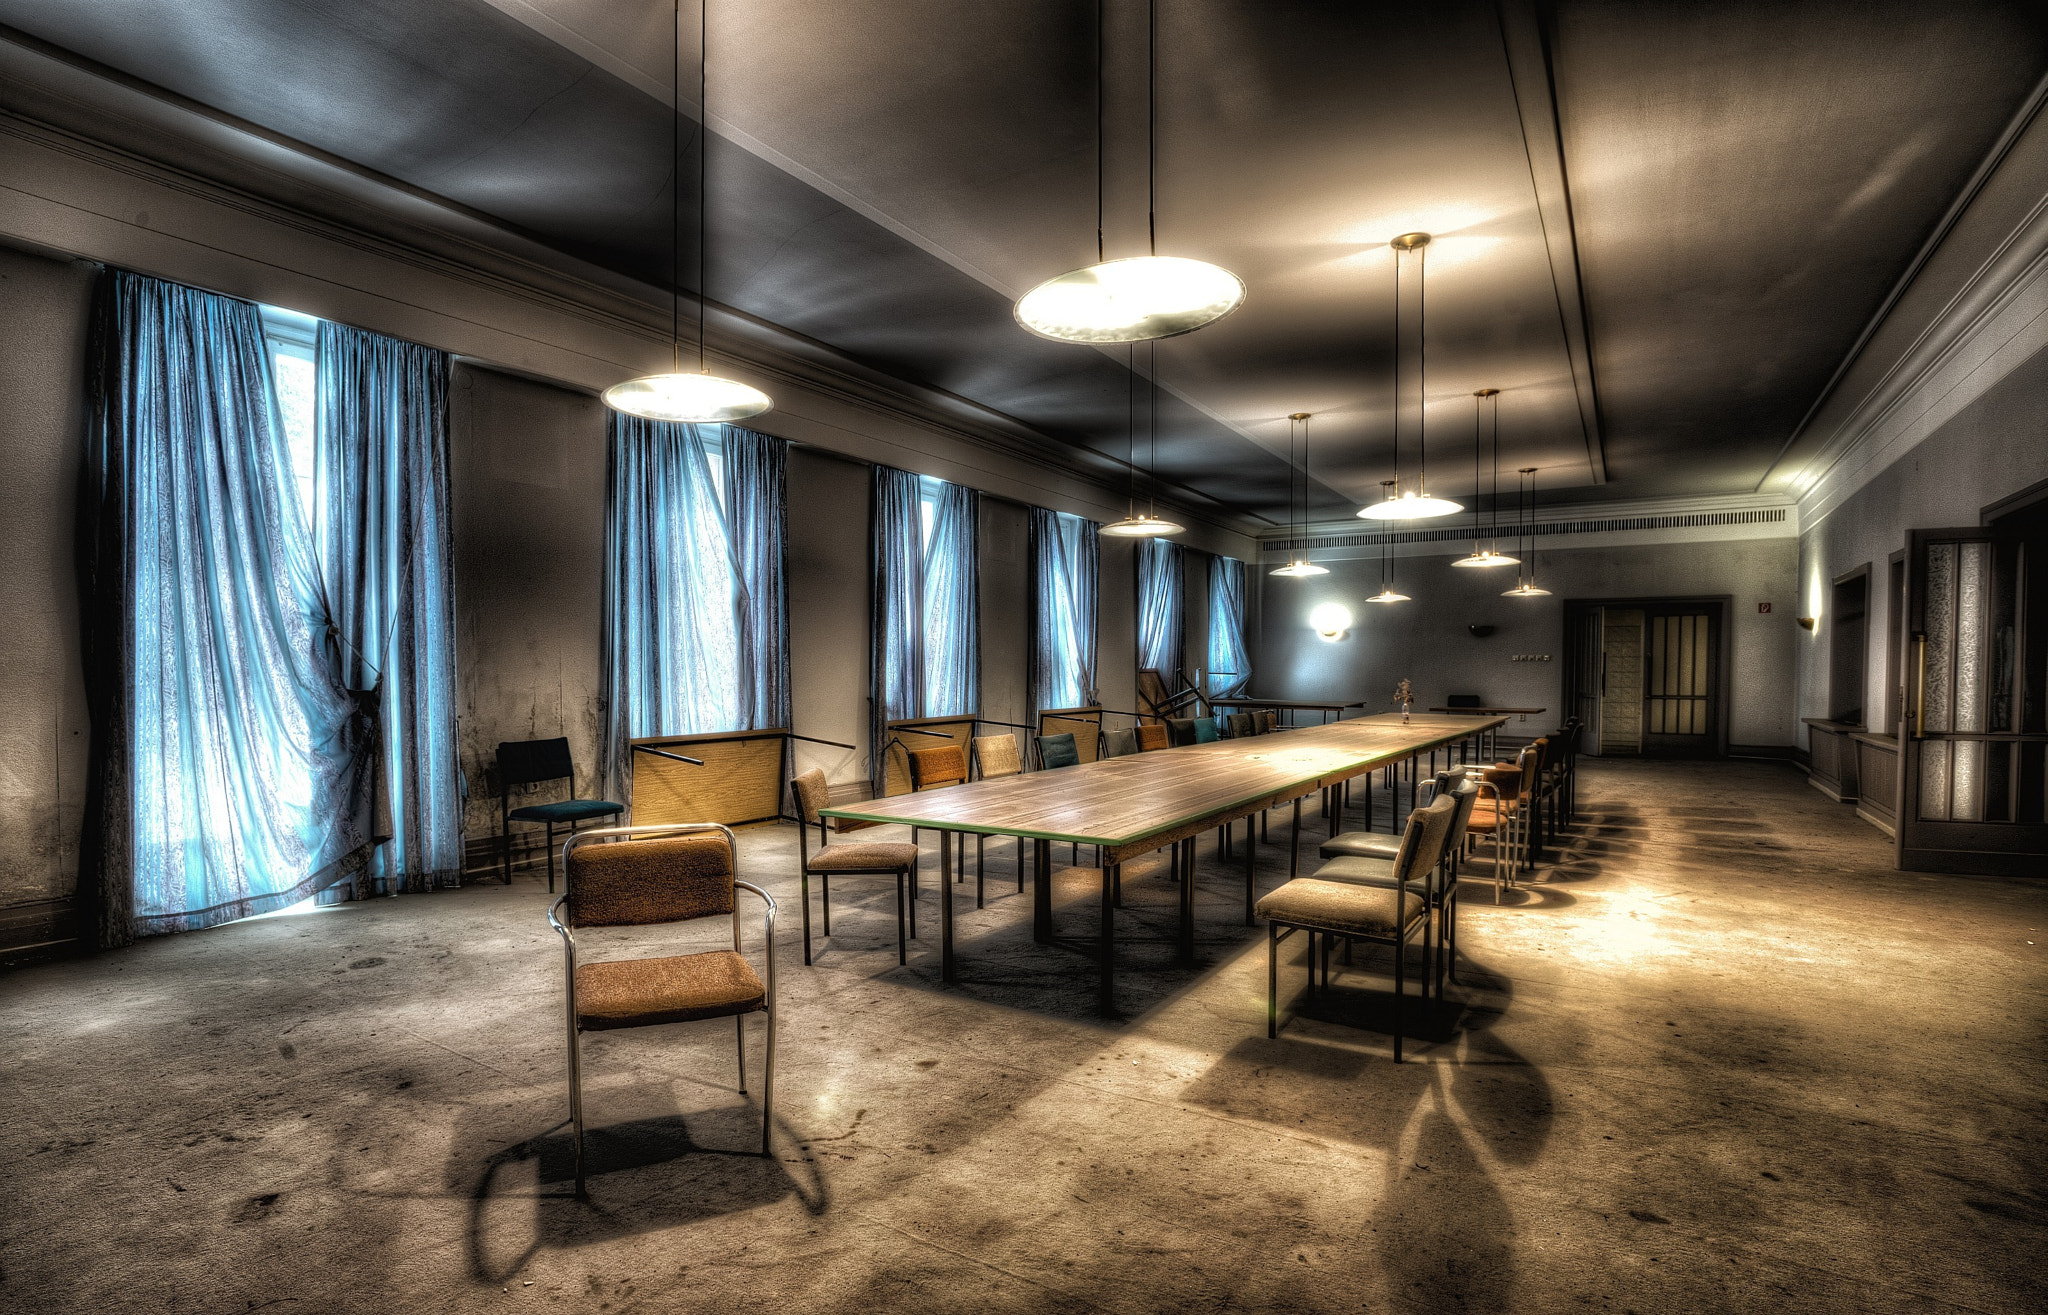 Photograph Have a seat by Andreas Koesler on 500px